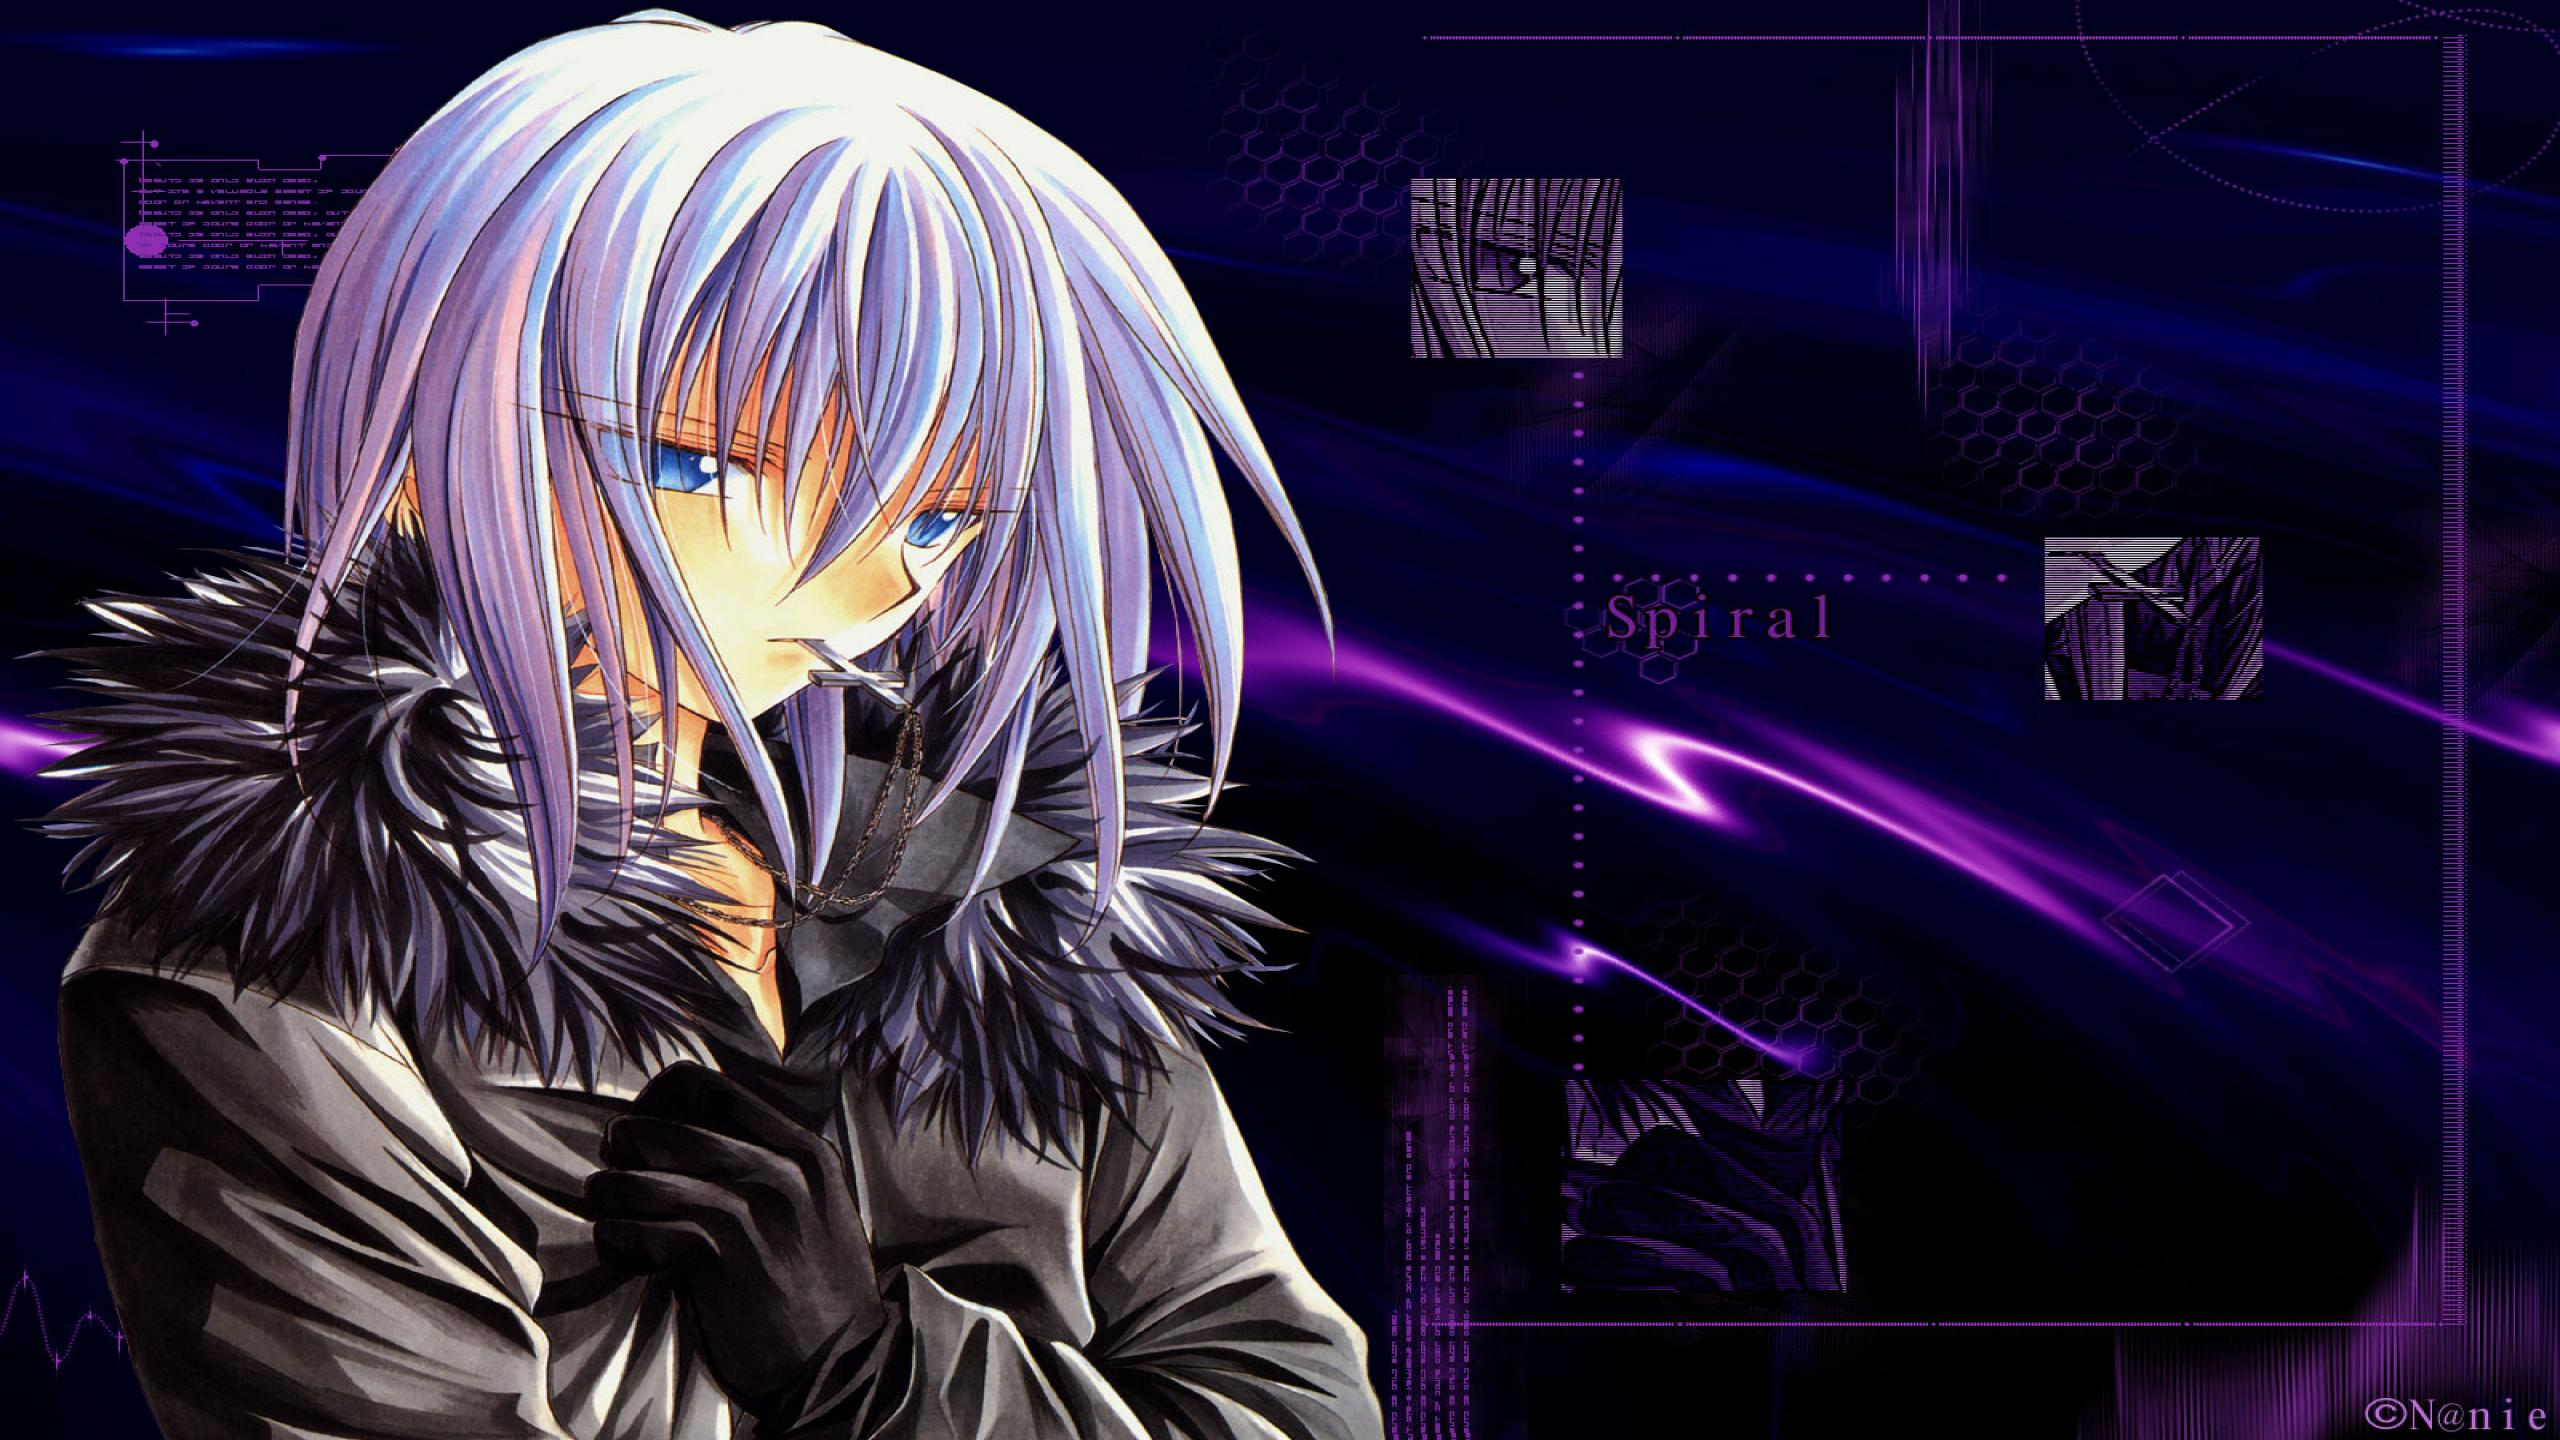 Tech Anime HD Wallpapers 2560x1440 Anime Wallpapers 2560x1440 Download 2560x1440